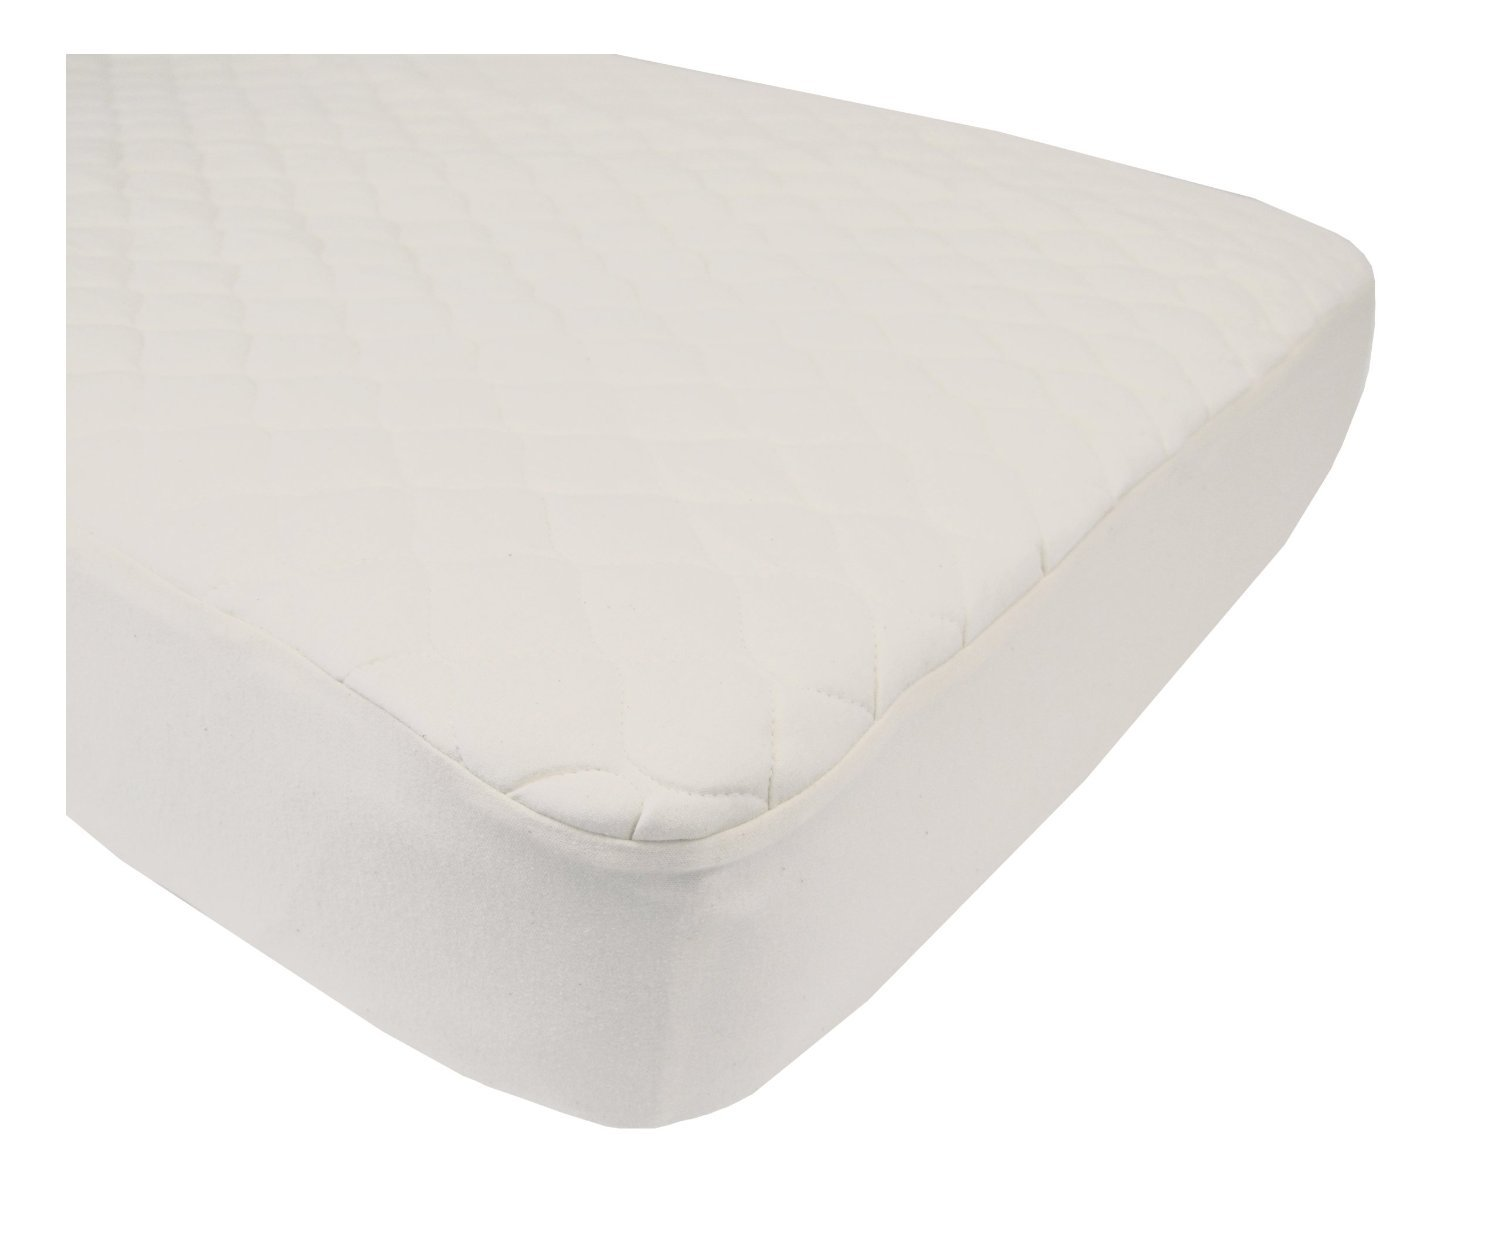 amazoncom american baby company organic cotton quilted crib u0026 toddler crib size fitted mattress pad covers natural 2 baby